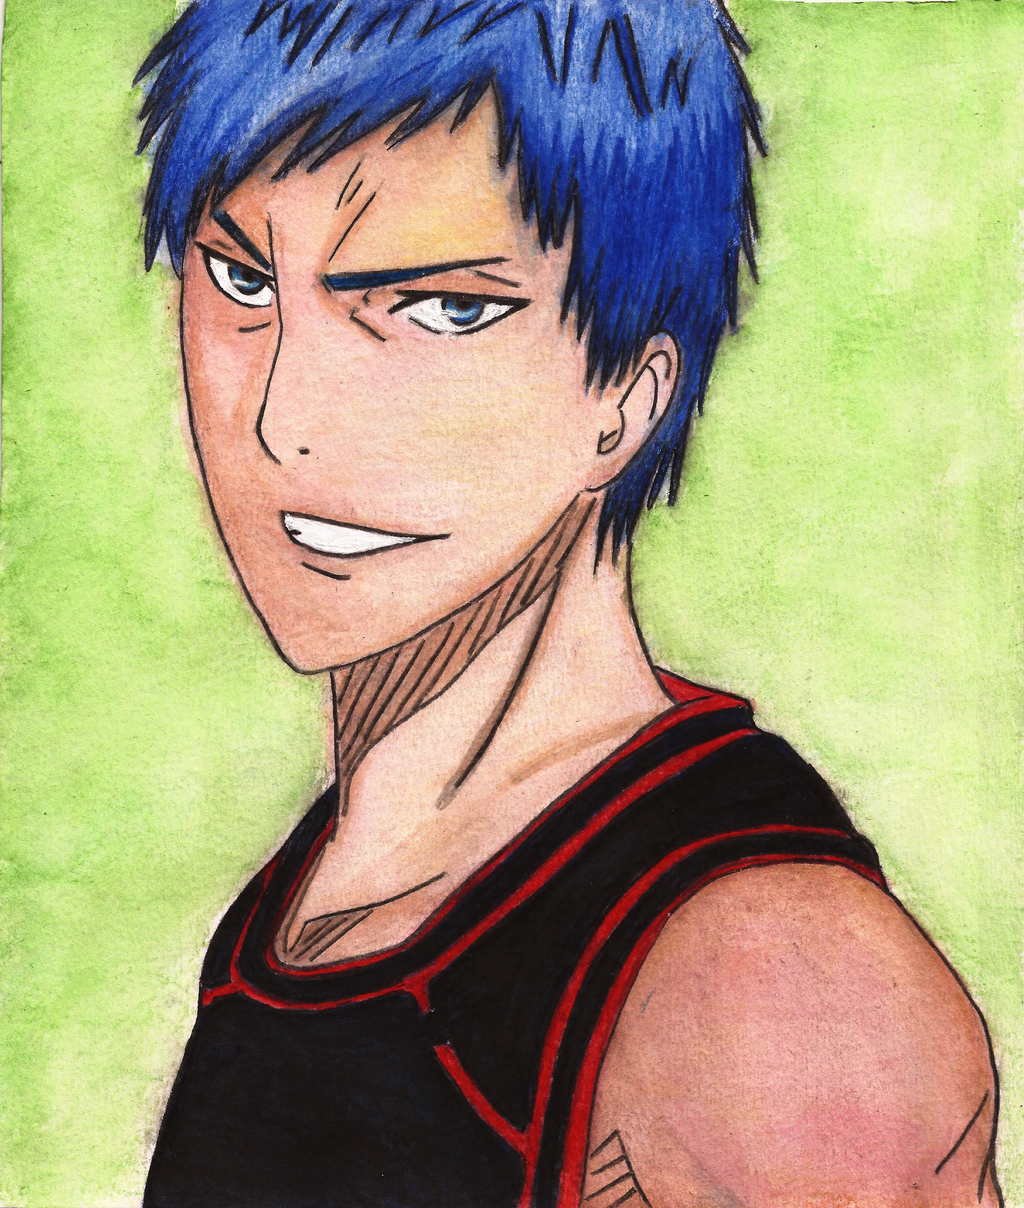 aomine daiki by misakikokoro on deviantart